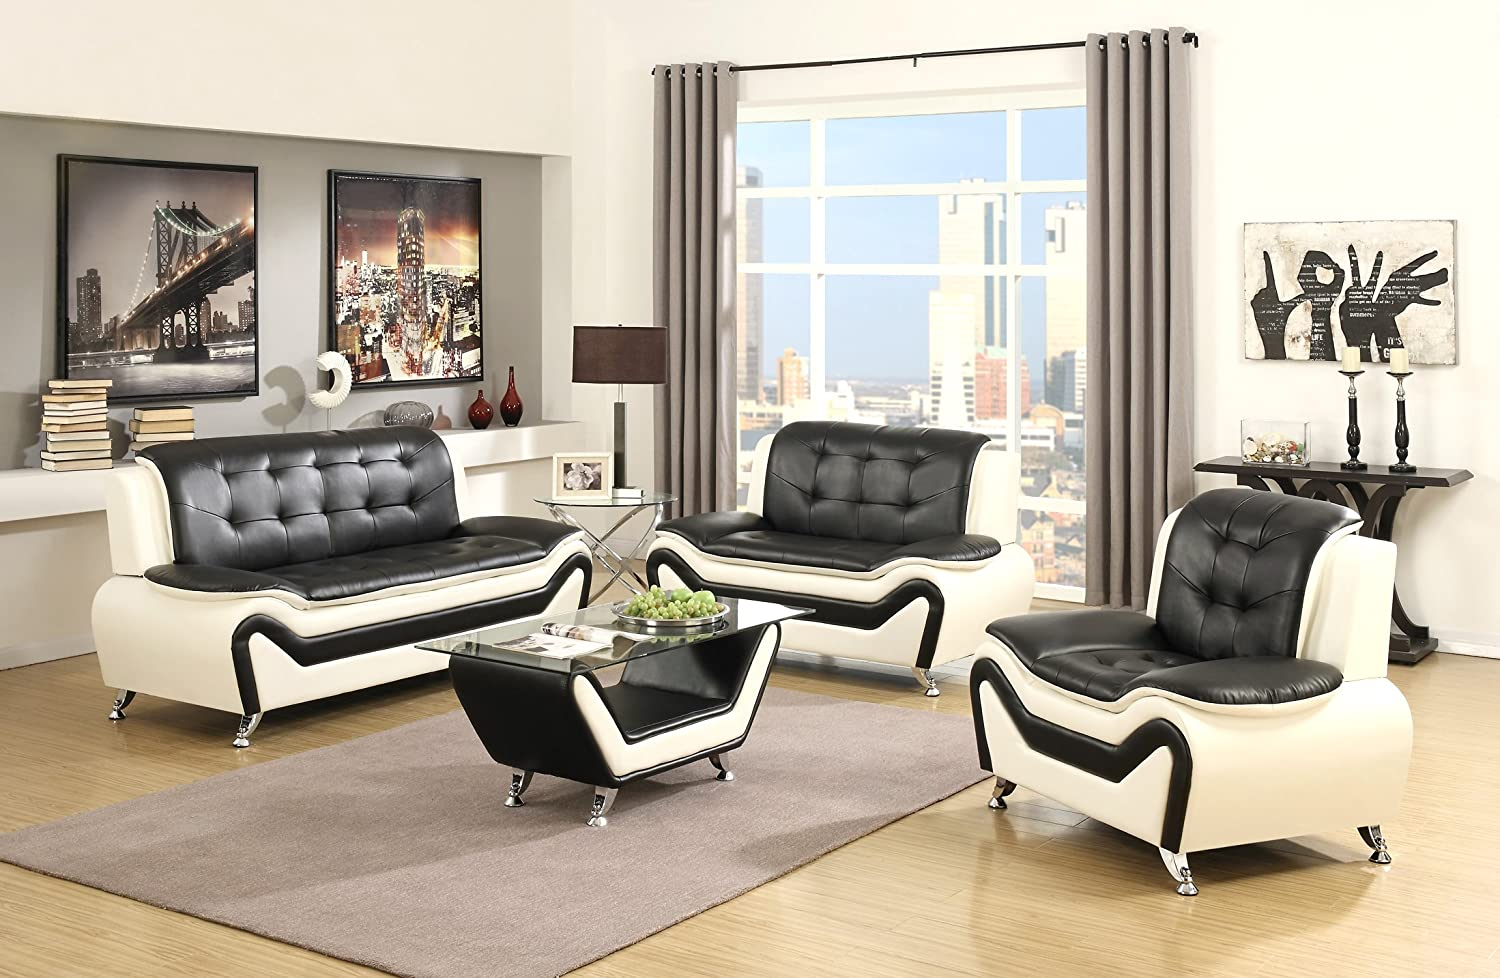 Amazon US Pride Furniture 3 Piece Modern Bonded Leather Sofa Set With Loveseat And Chair White Black Kitchen Dining